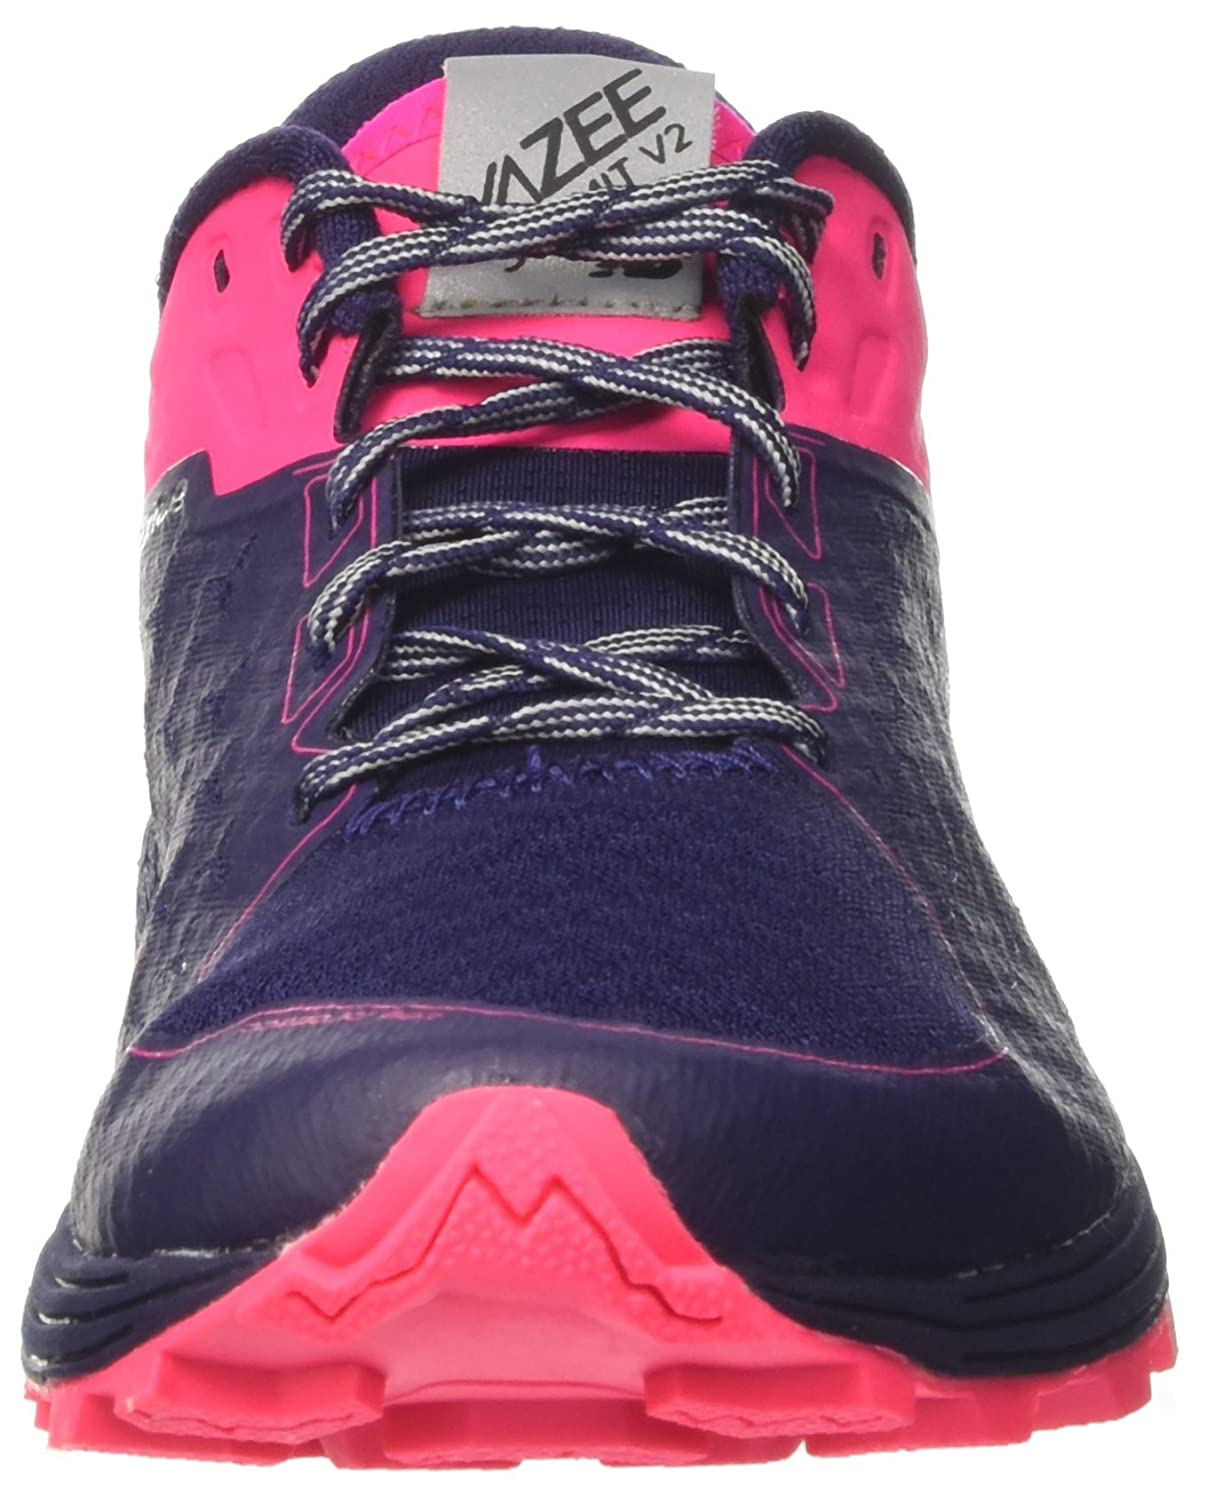 New Balance Women's Vazee Summit V2 Running Shoe Trail Runner Denim/Alpha B01LYA9RKK 5 D US|Dark Denim/Alpha Runner Pink 6ec2ec